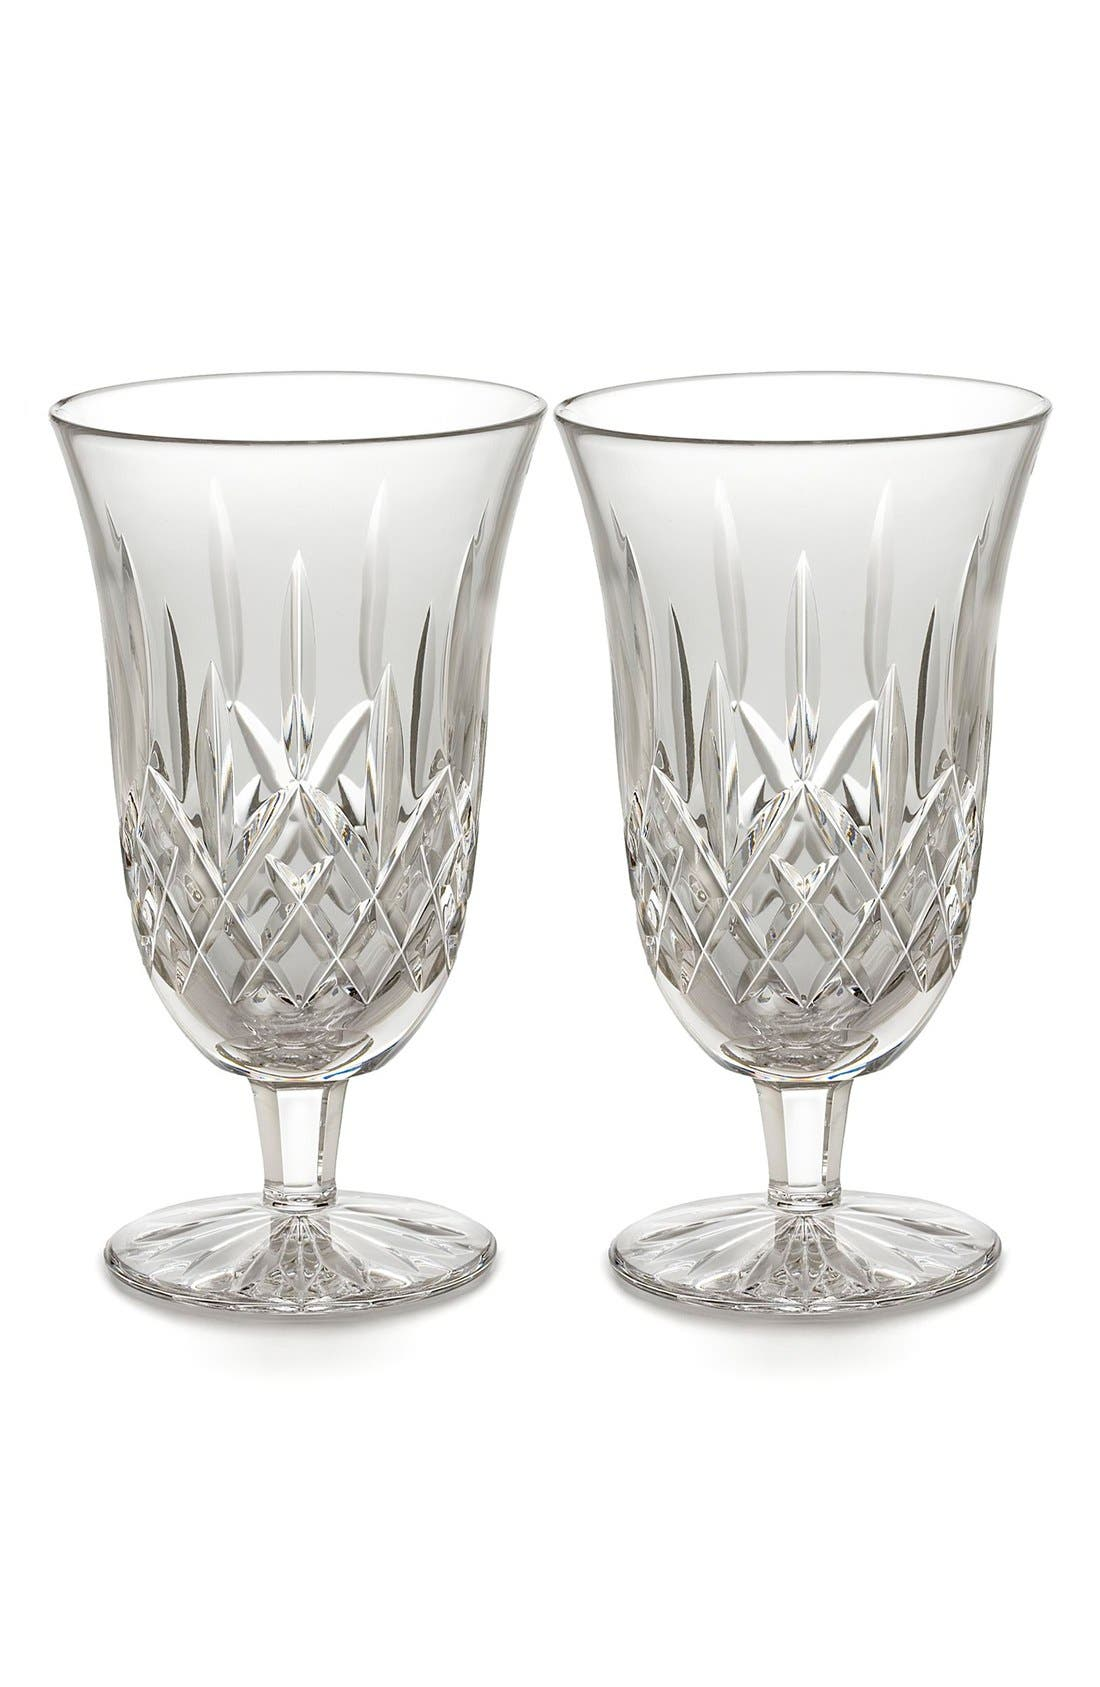 Alternate Image 1 Selected - Waterford 'Lismore' Lead Crystal Iced Beverage Glasses (Set of 2)